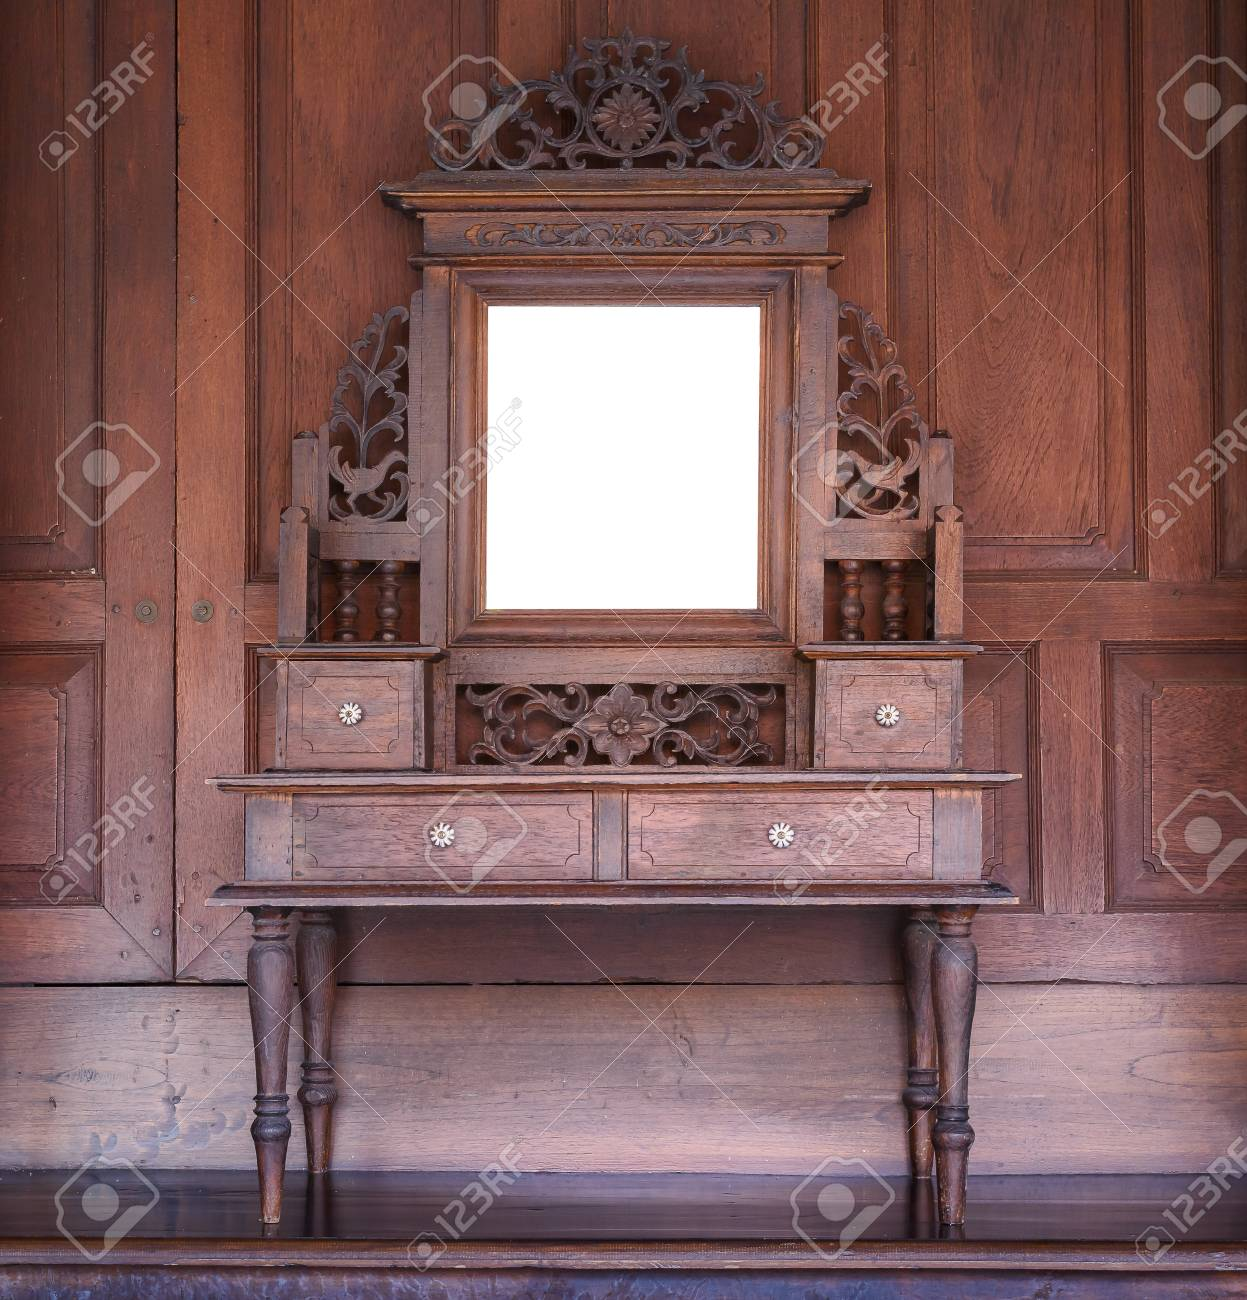 old wooden vanity, Vintage dressing table in old thai house style Stock  Photo - 89997173 - Old Wooden Vanity, Vintage Dressing Table In Old Thai House Style